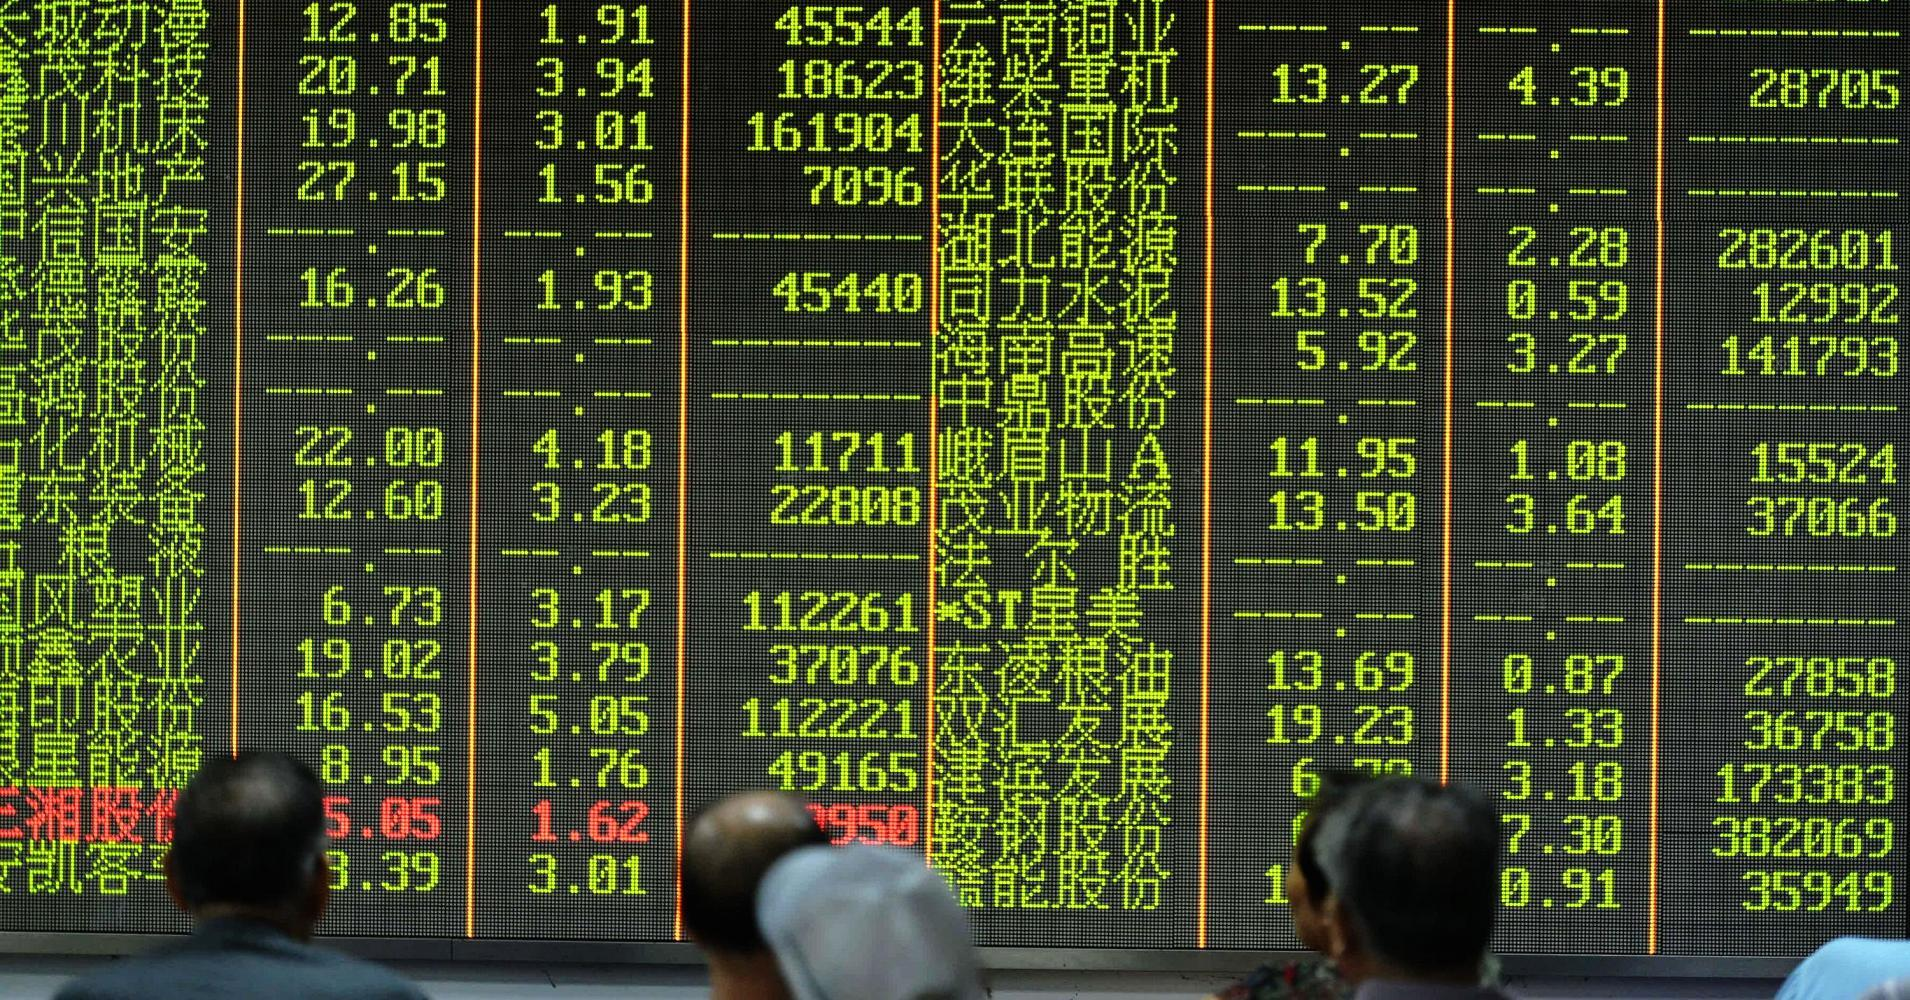 Relax: China's fundamentals are sound